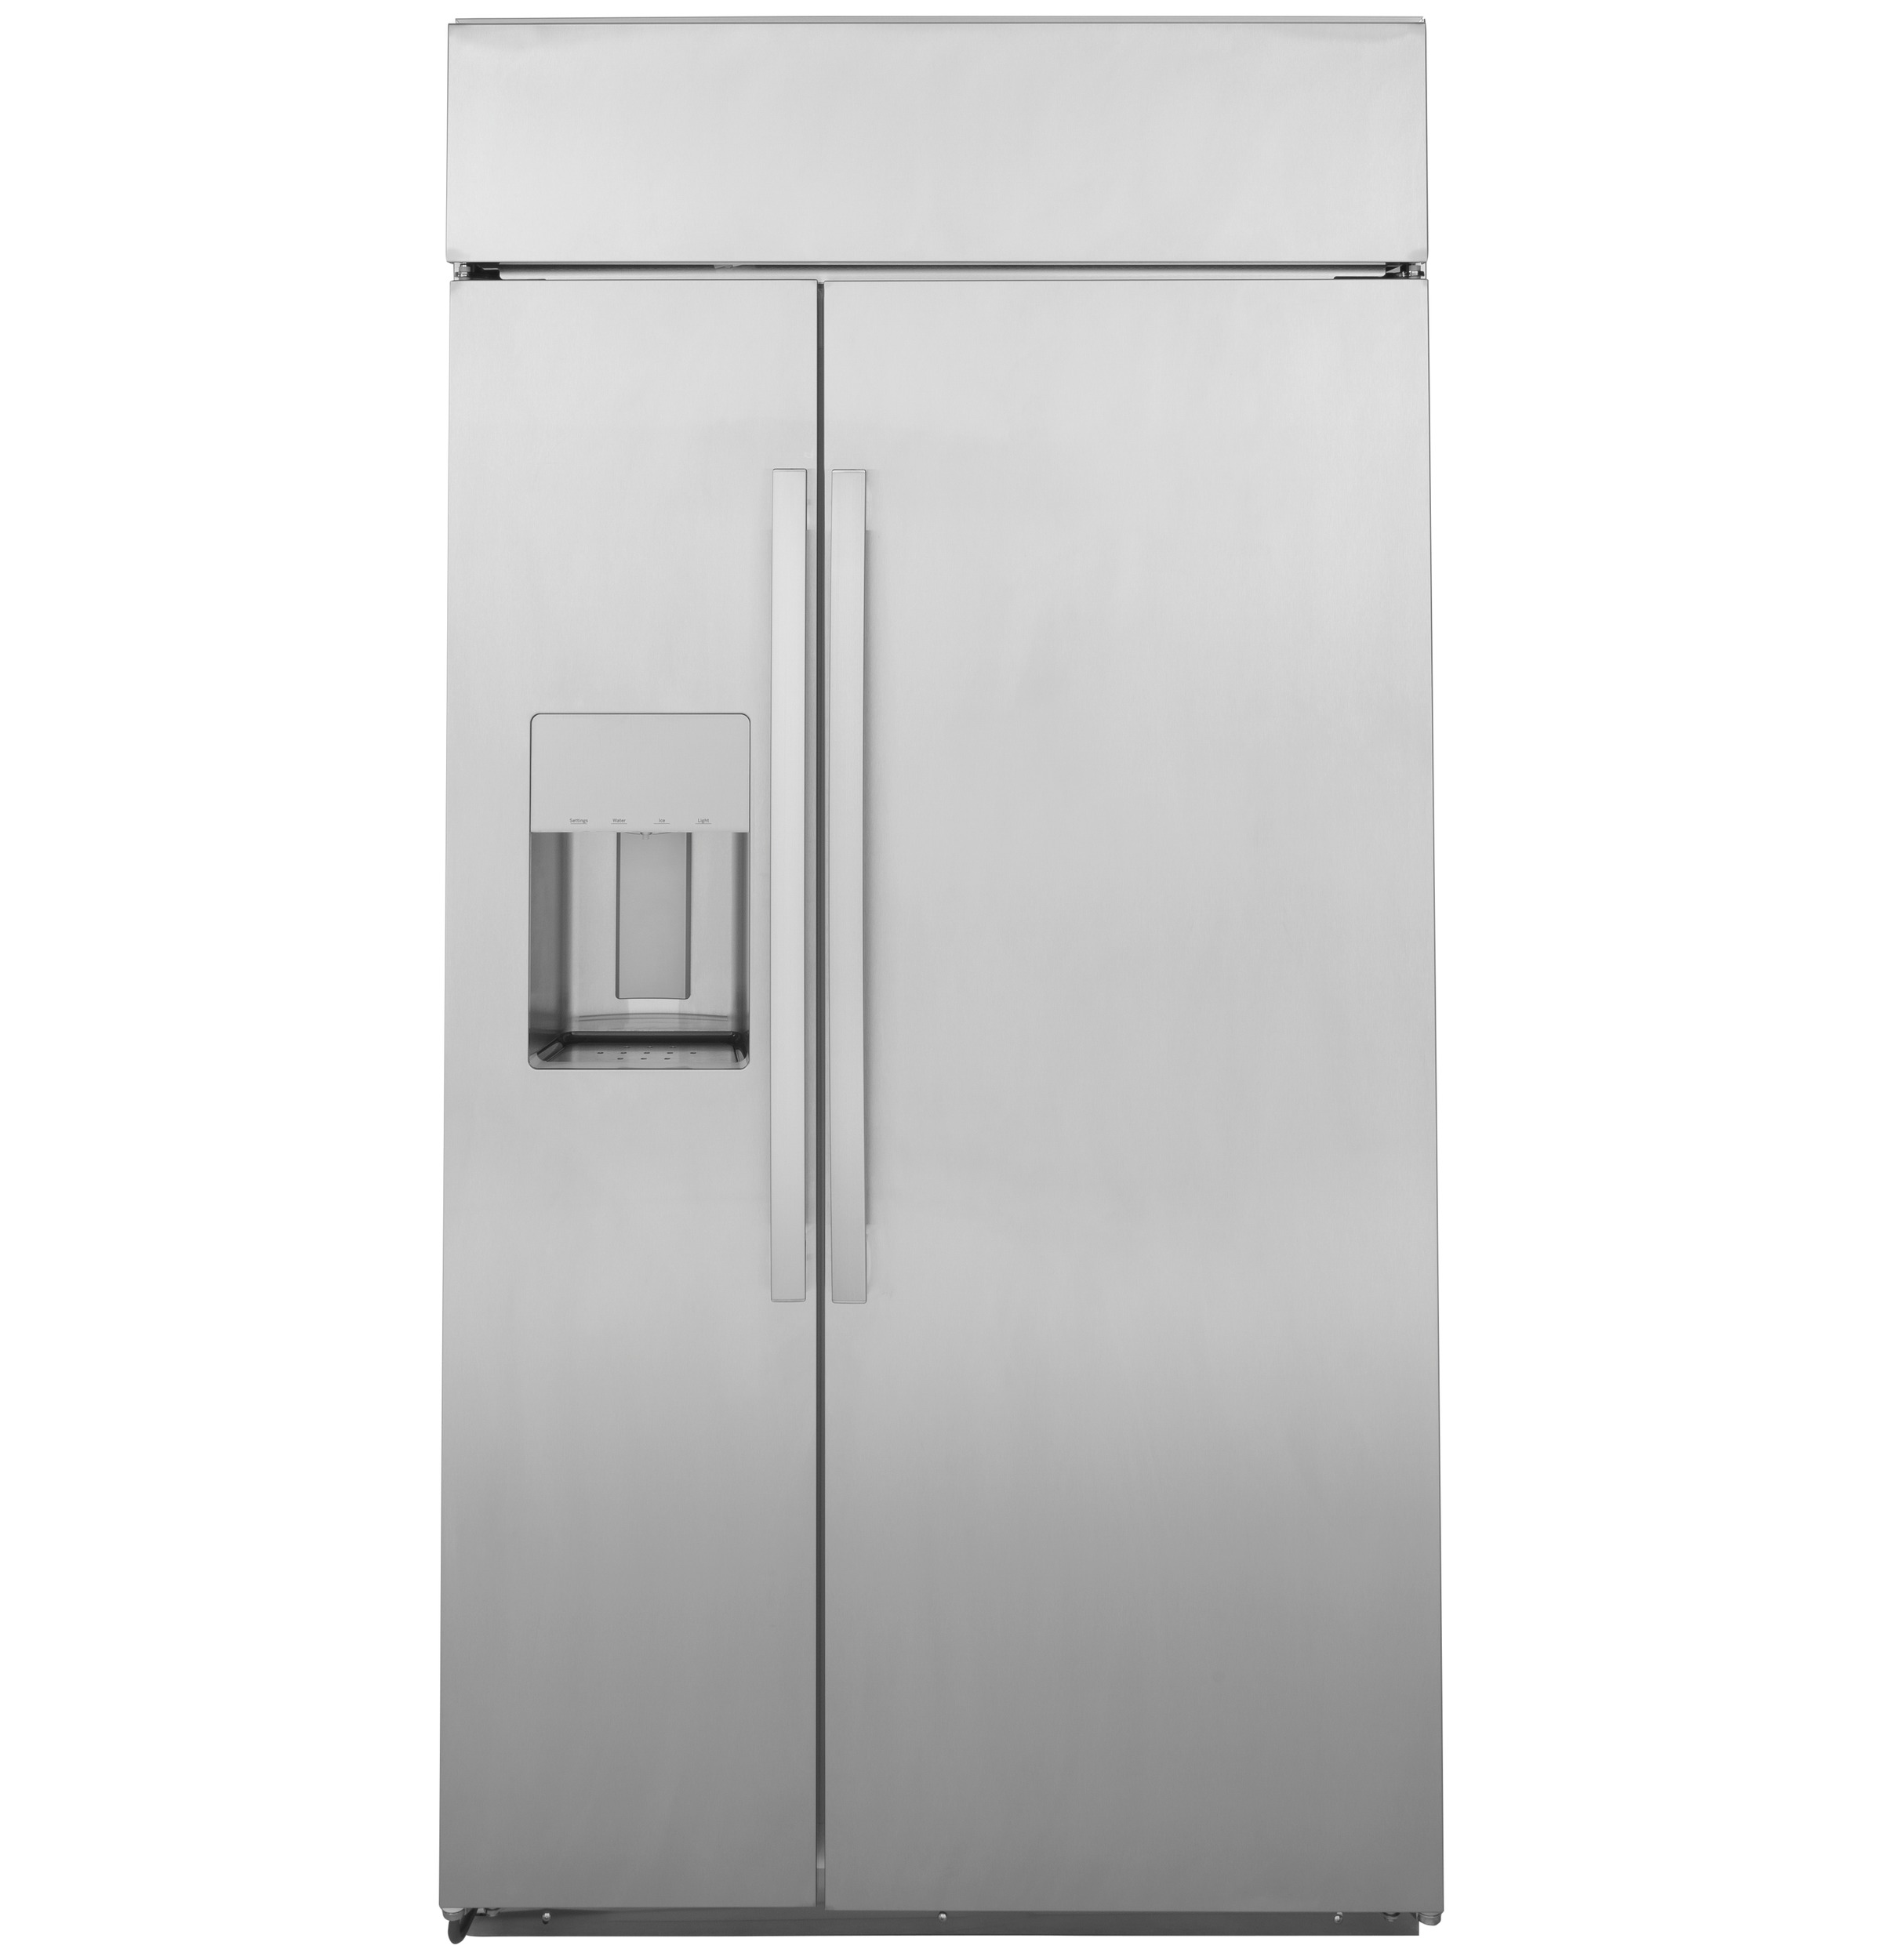 "GE Profile GE Profile™ Series 48"" Smart Built-In Side-by-Side Refrigerator with Dispenser"